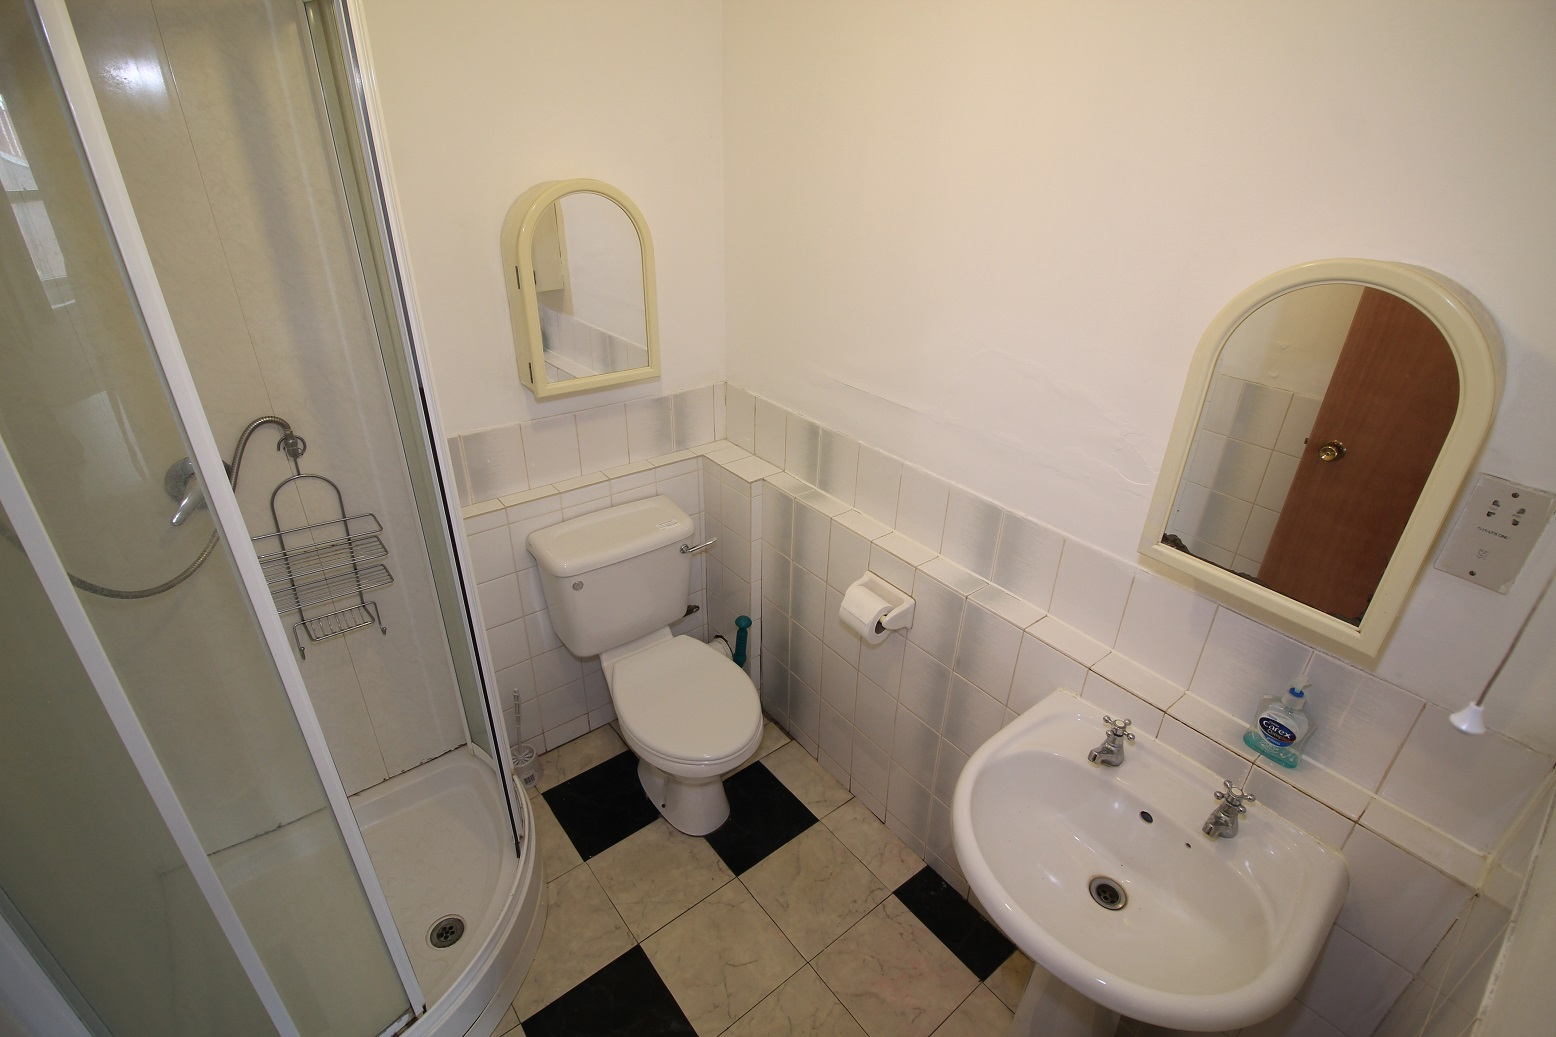 1 room in Hanger Hill, Hanger Hill, London, W5 3AP RoomsLocal image